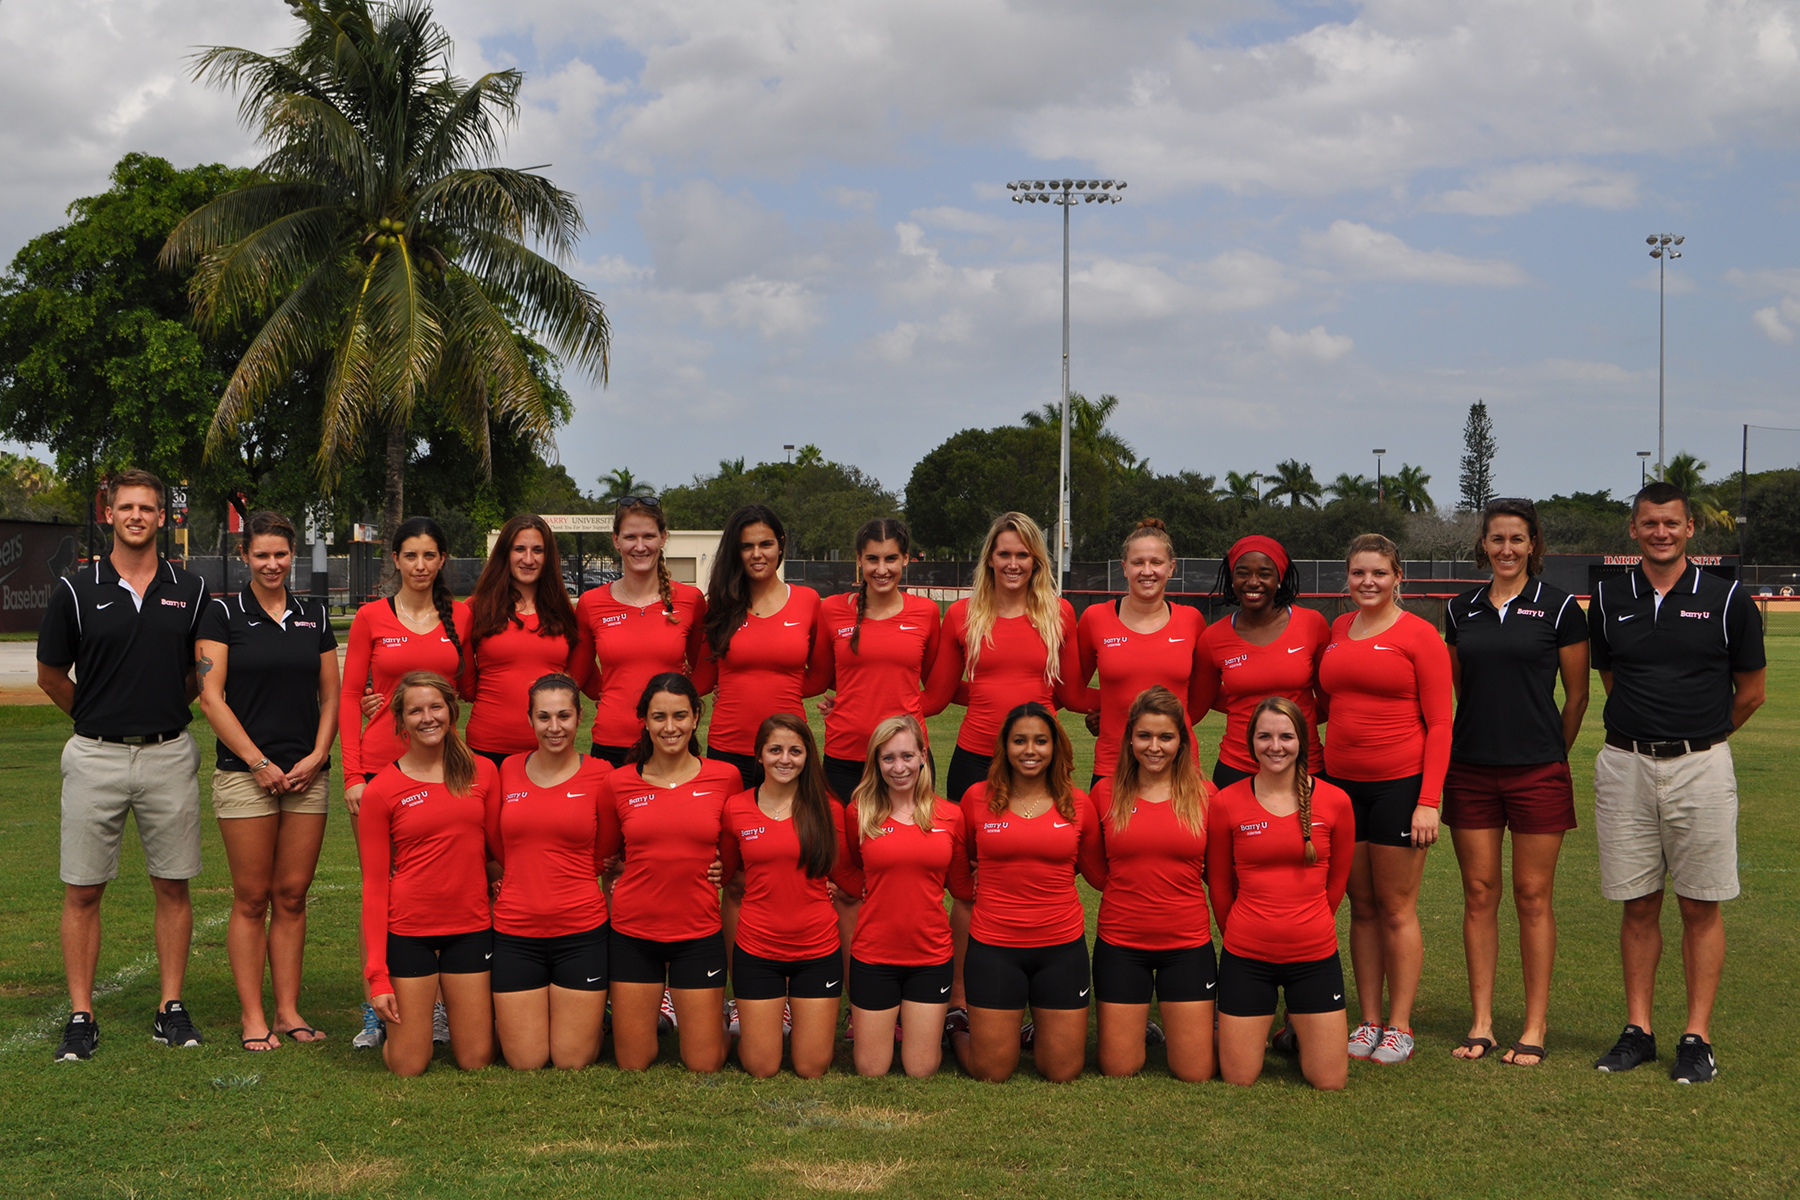 Rowing Team Picture